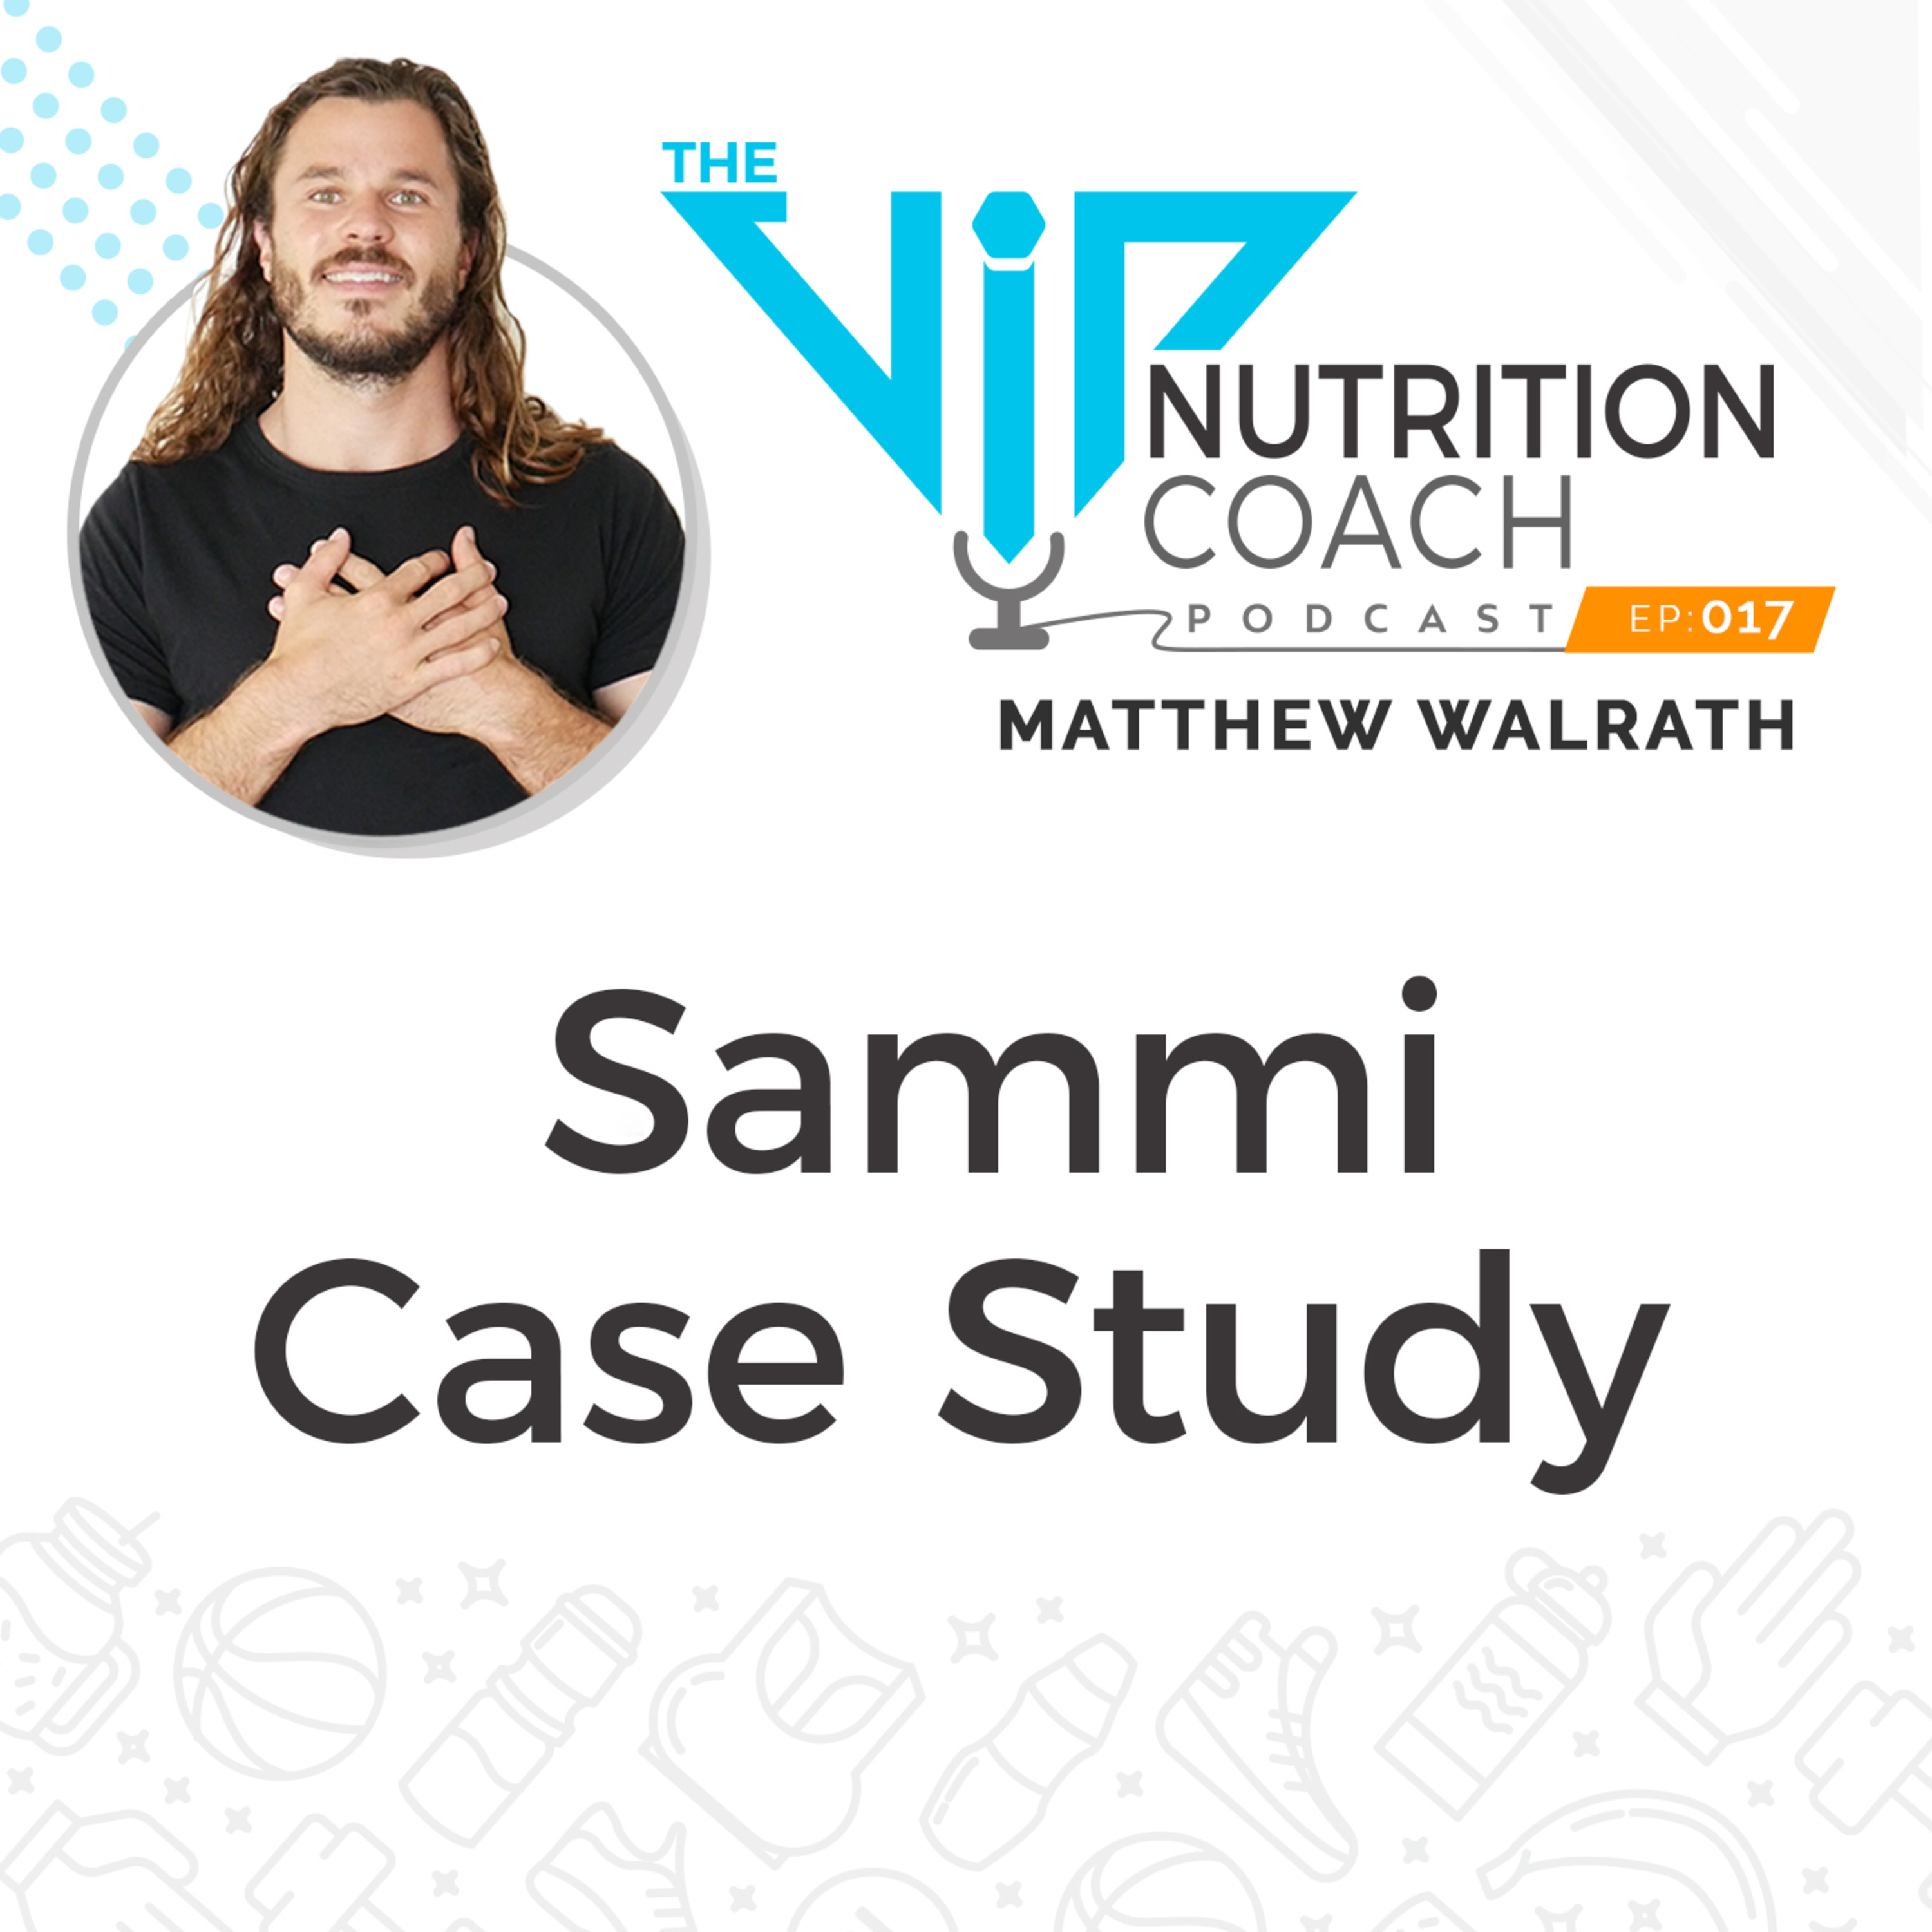 Starting a Nutrition Coaching Business (Business Success Story)